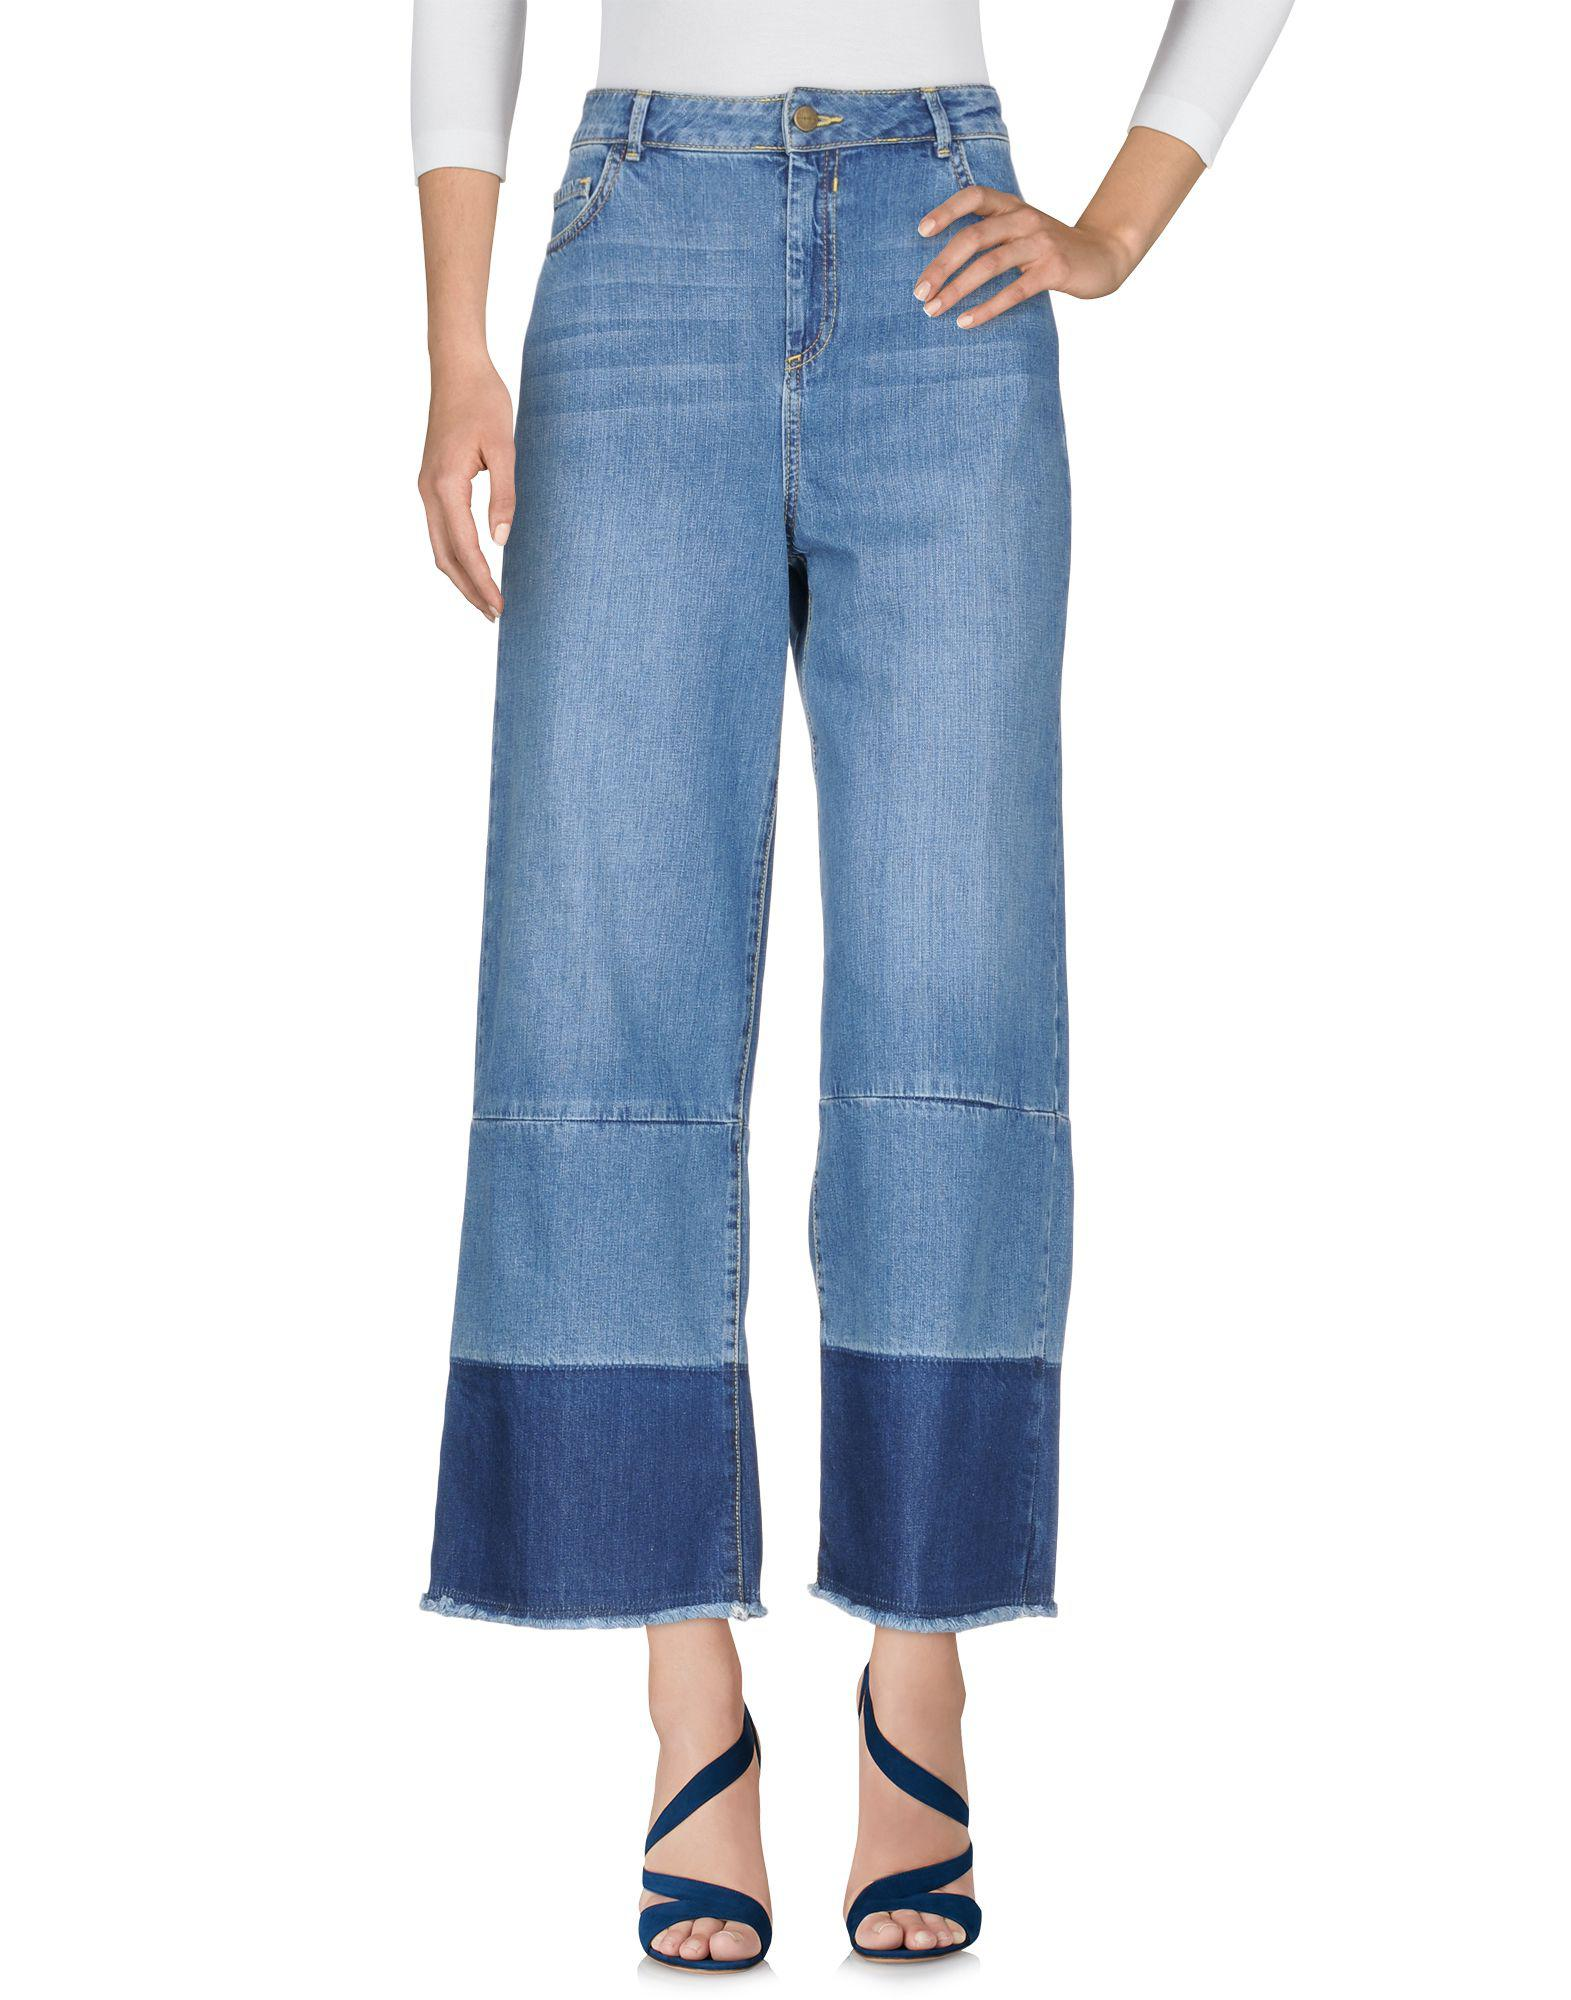 Visit New Cheap Price With Paypal Cheap Online DENIM - Denim trousers Intropia Cheap Sast Buy Cheap 100% Authentic tHZvyzDZ